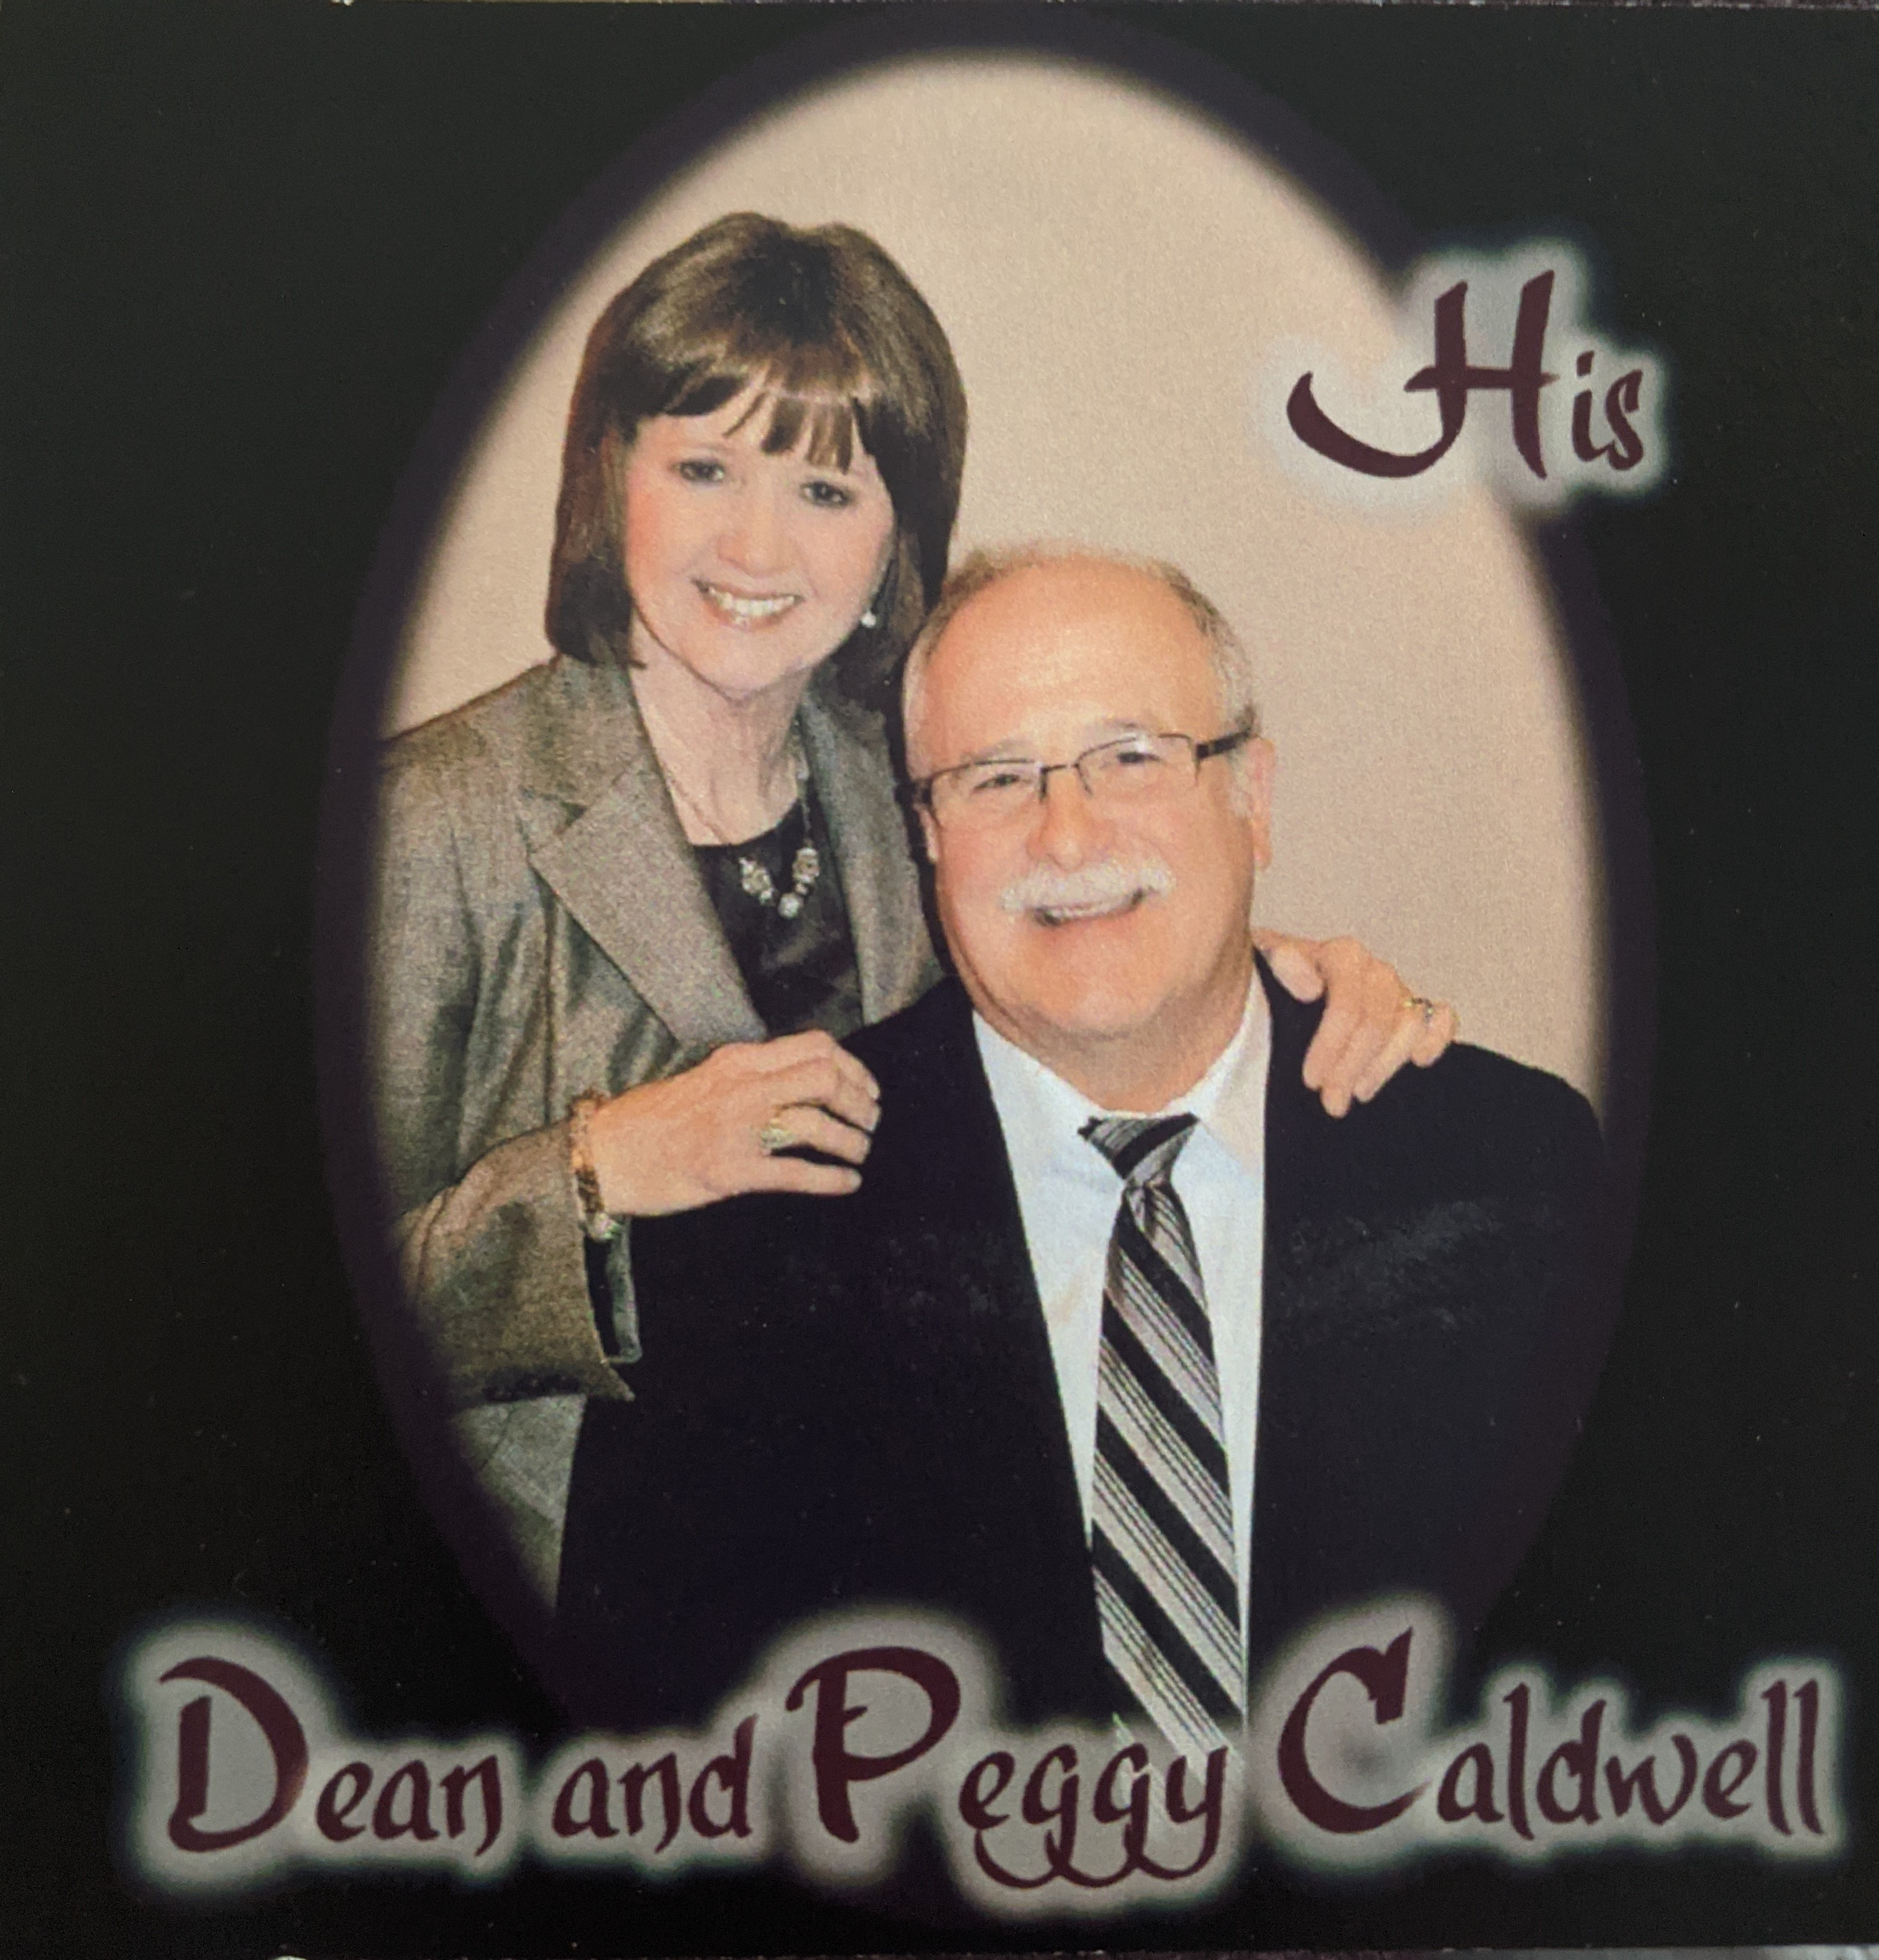 Art for God's Unchanging Hand by Peggy Caldwell